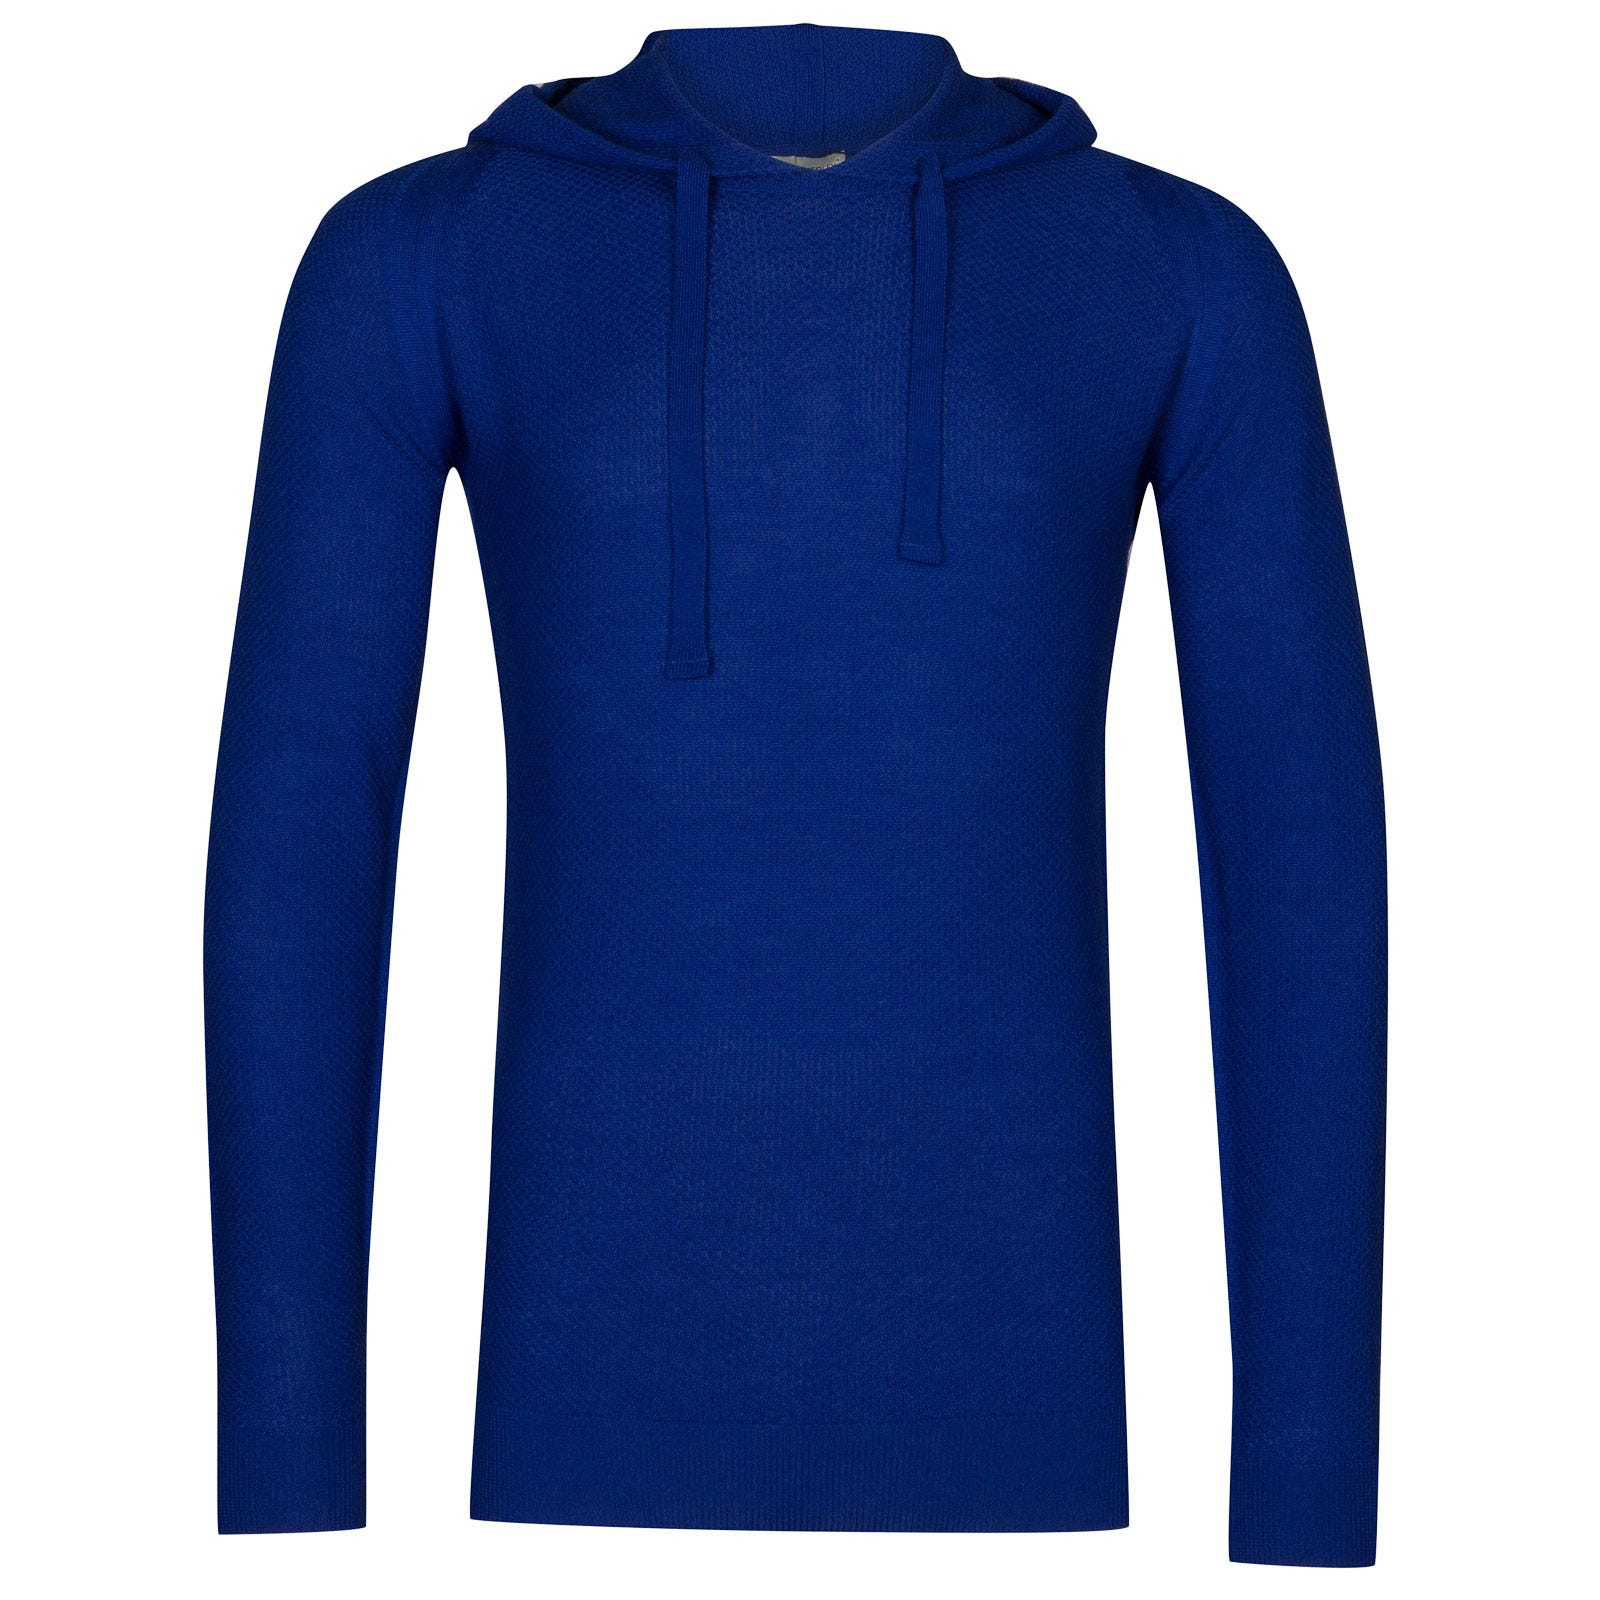 John Smedley 4Singular Merino Wool Pullover in Coniston Blue-S